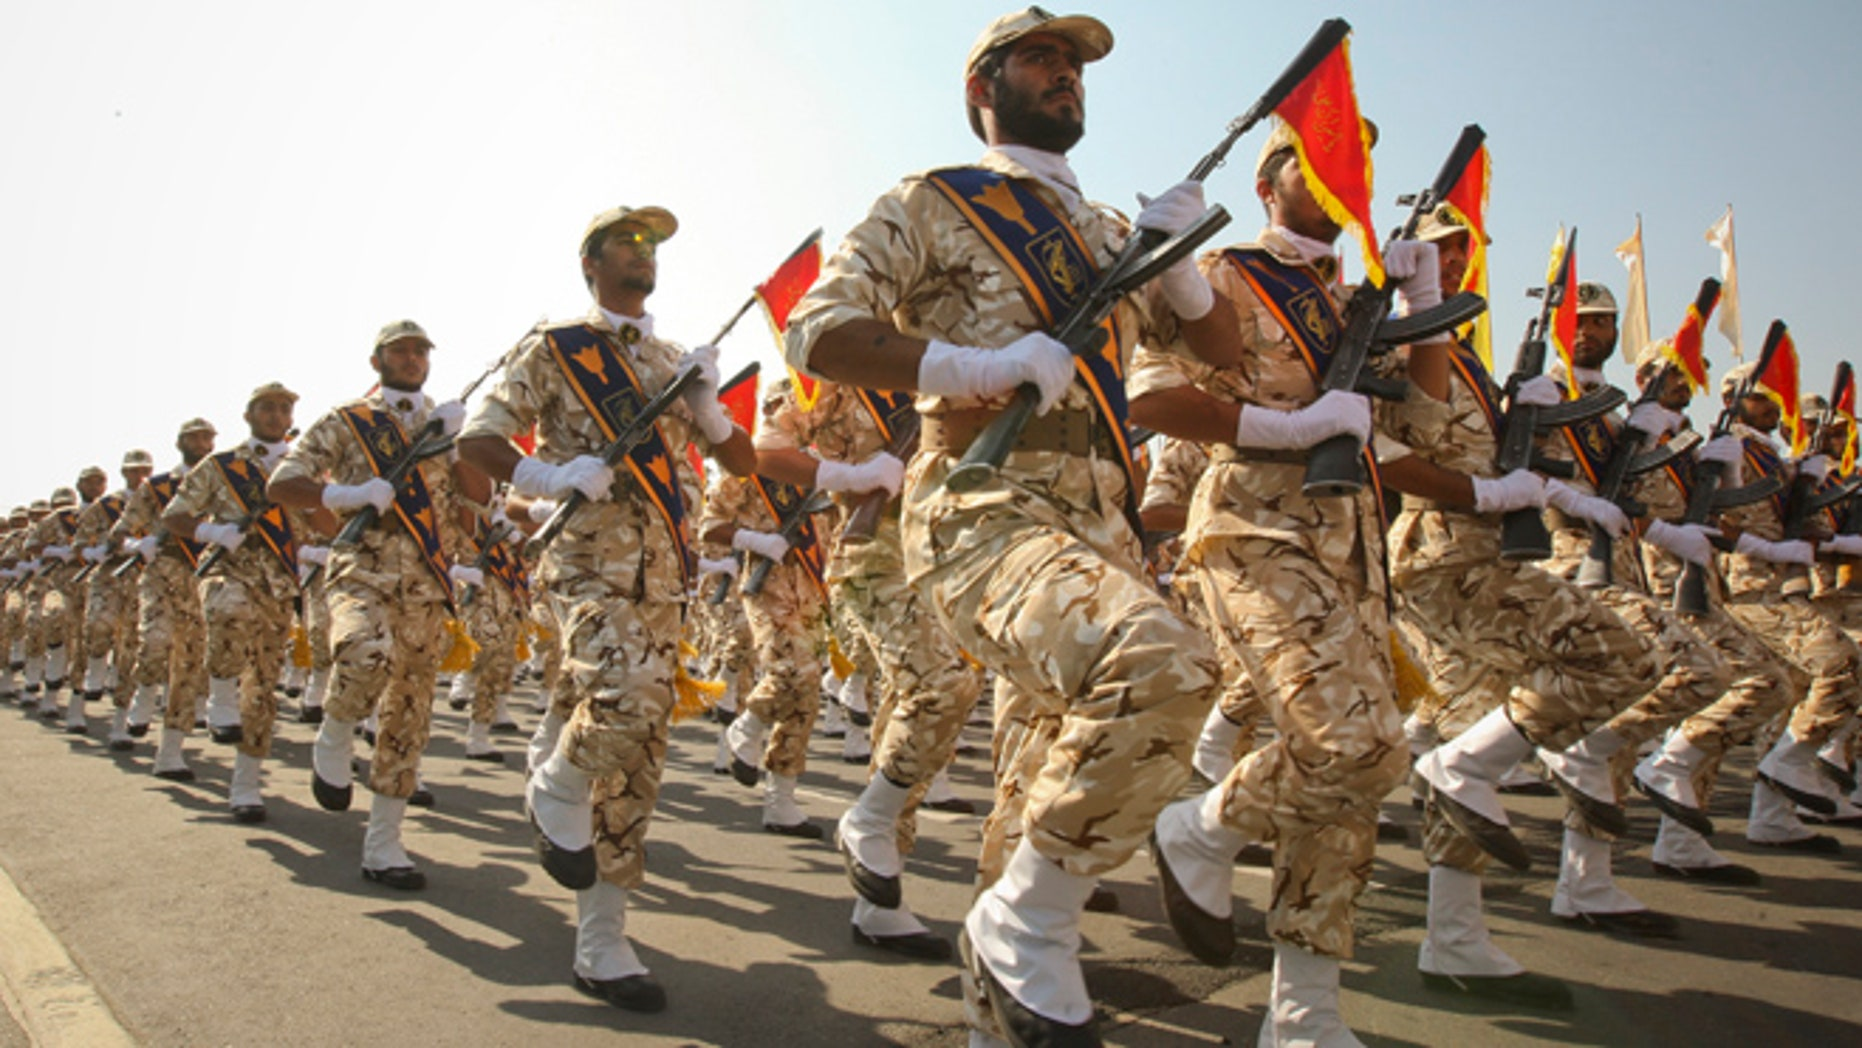 FILE 2011: Members of the Iranian revolutionary guard march during a parade to commemorate the anniversary of the Iran-Iraq war.